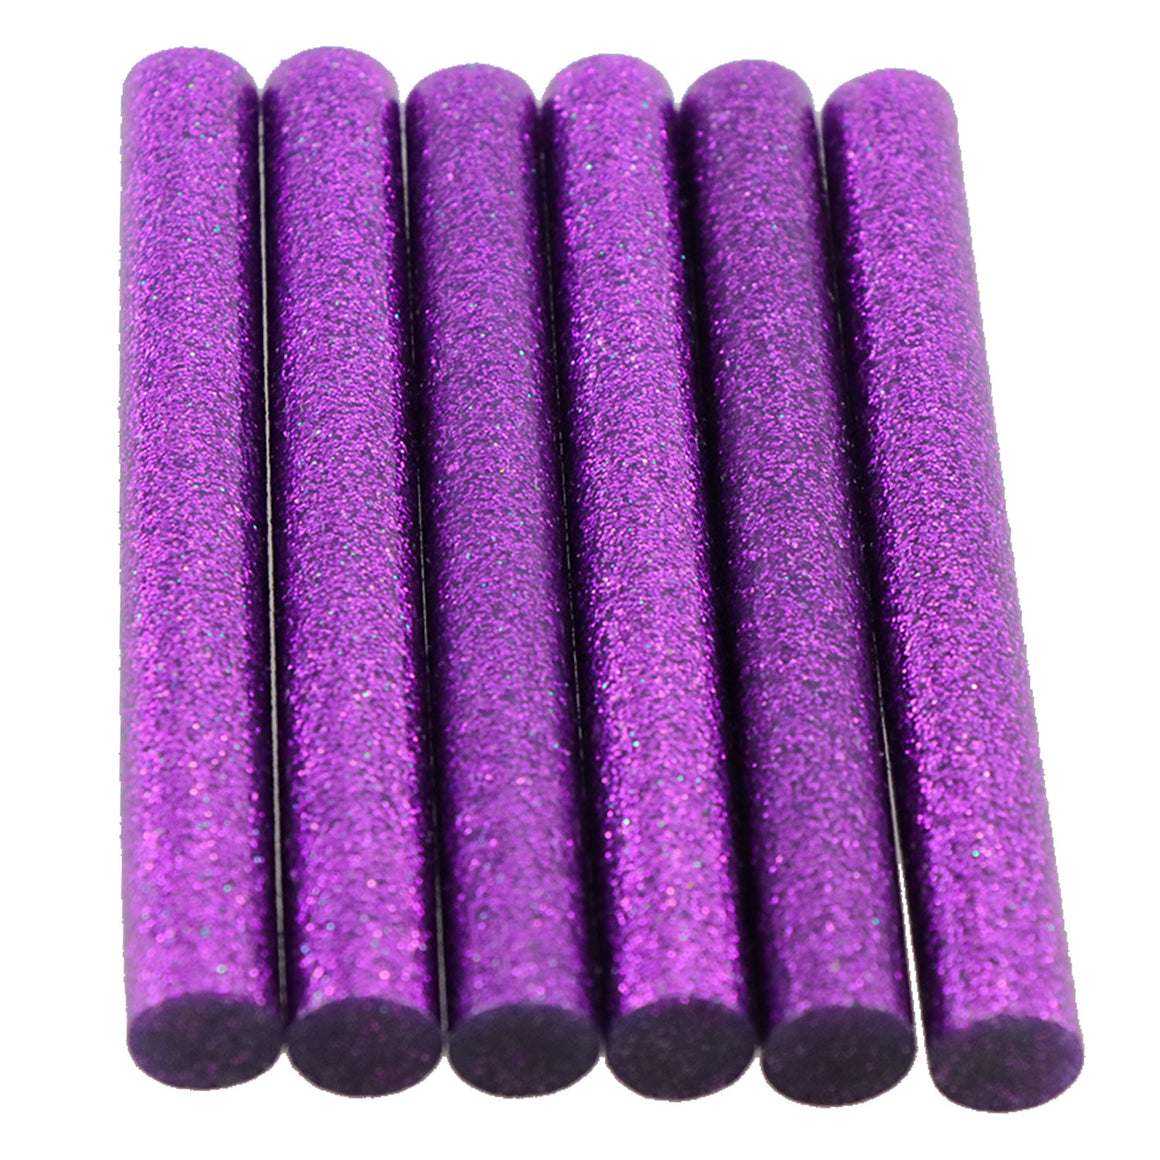 Purple Glitter Hot Glue Sticks Full Size